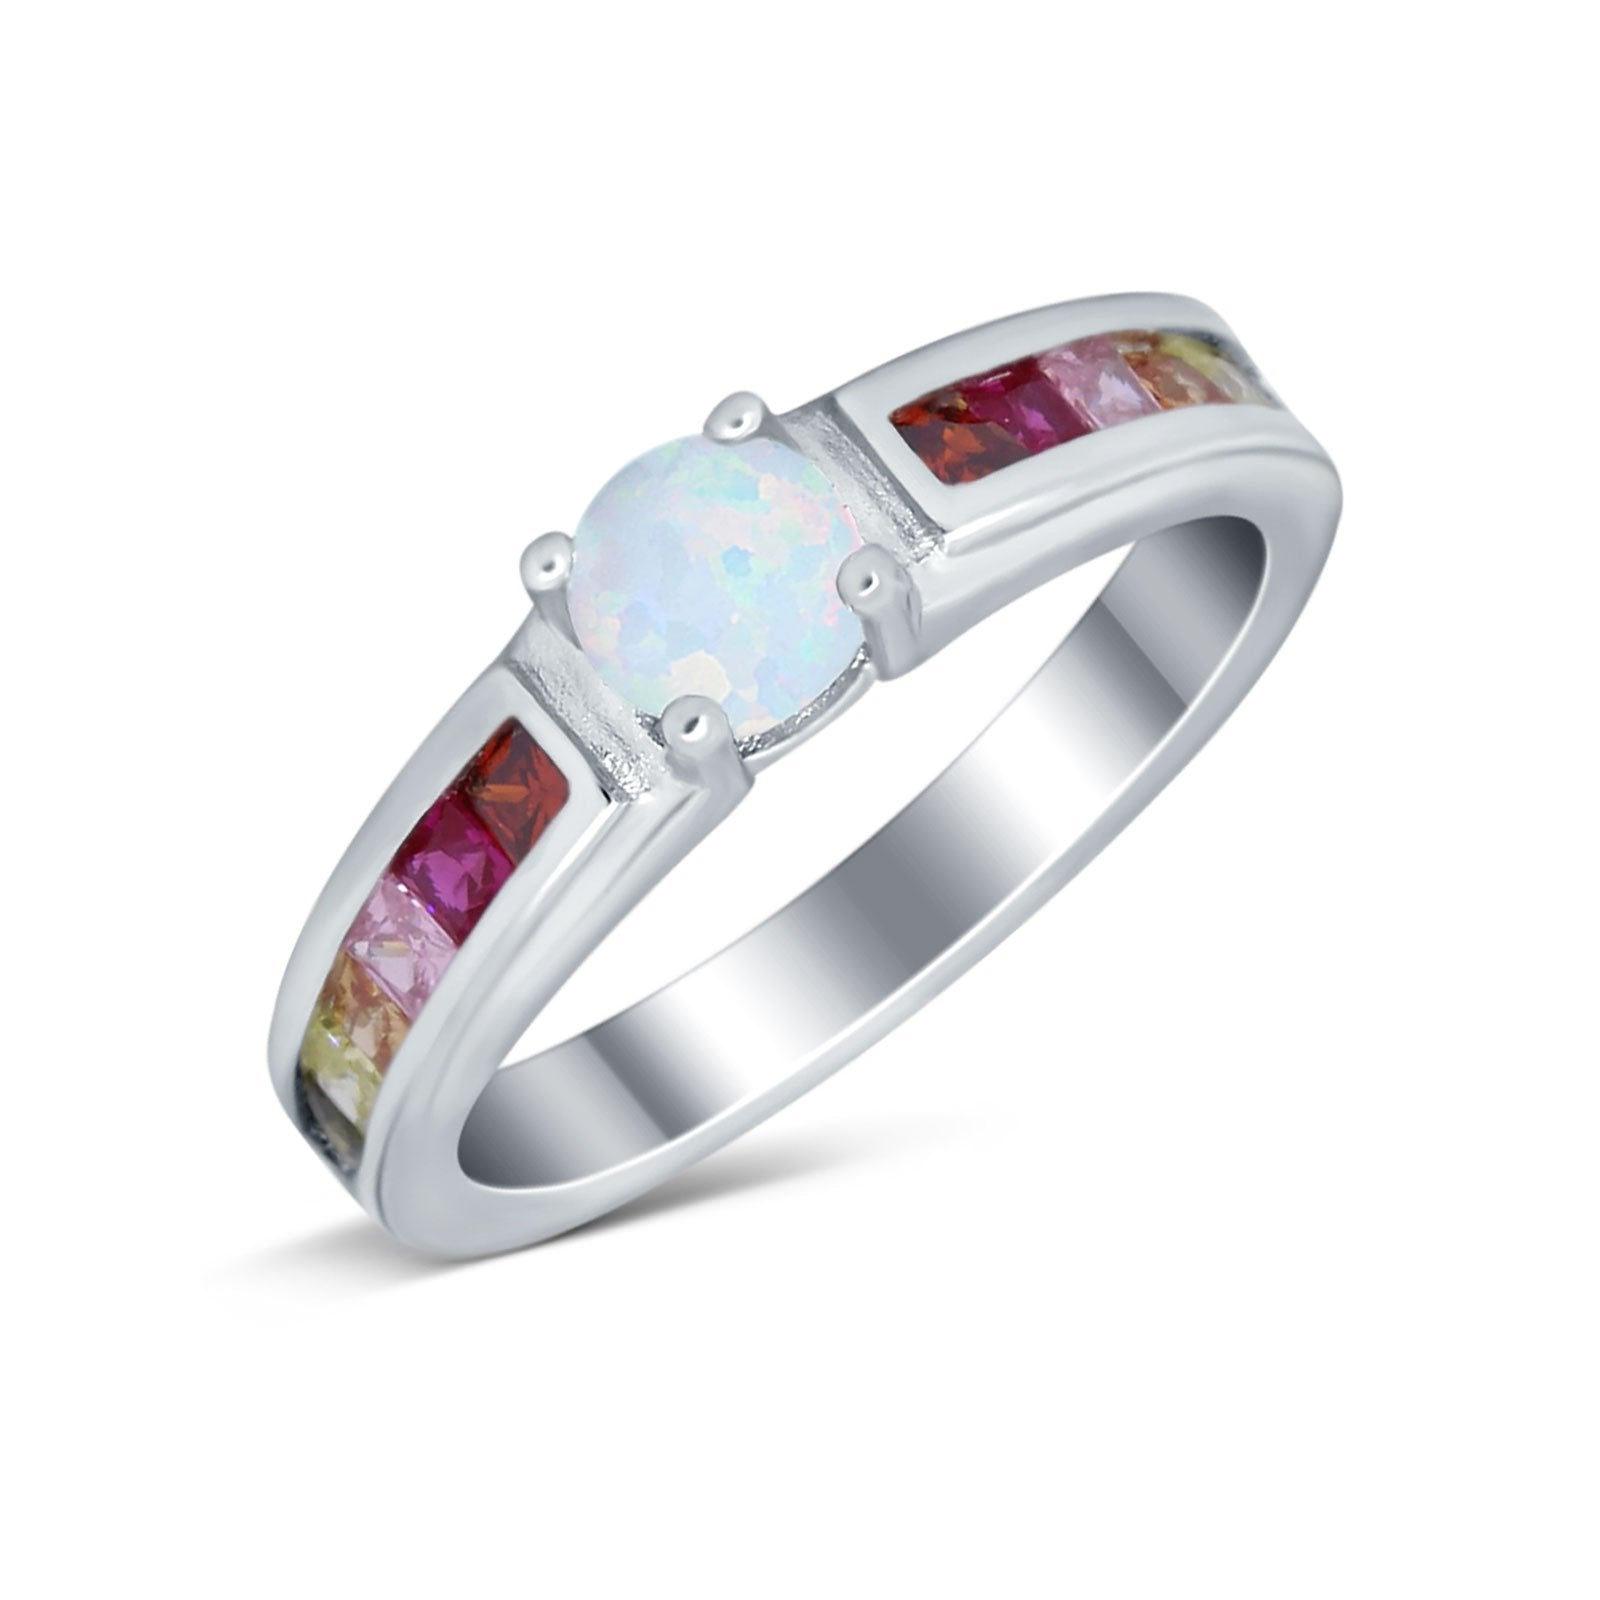 Soliaire Accent Multicolored Simulated Cubic Zirconia Ring 925 Sterling Silver